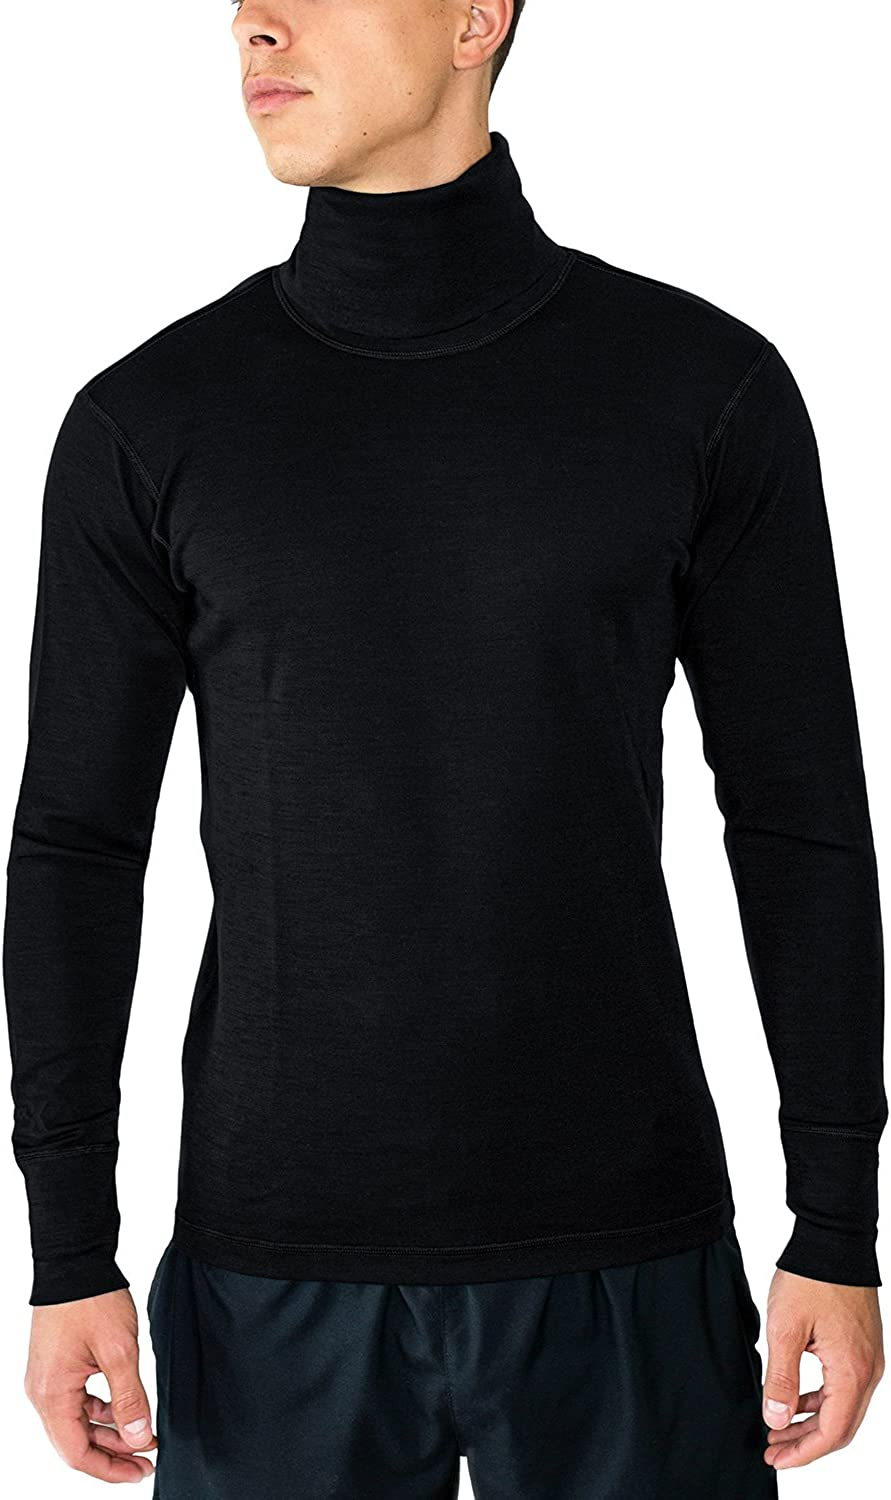 Woolx Prescott  Men's Merino Wool Turtleneck  Midweight Wool Base Layer Shirt